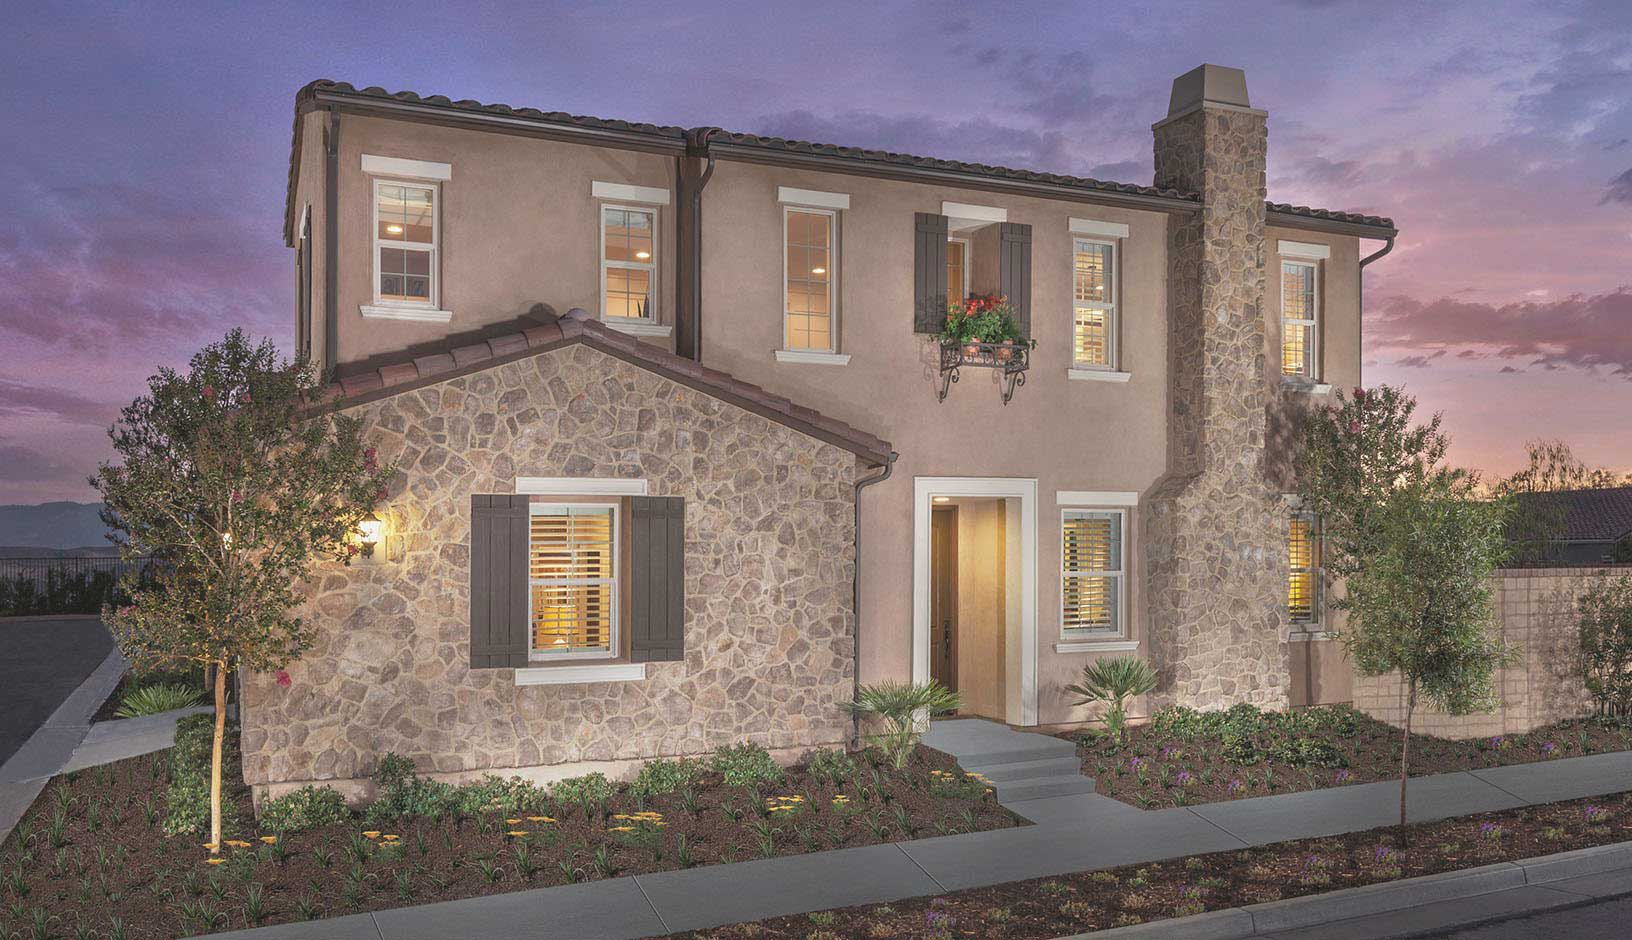 Grayson at five knolls new homes in santa clarita ca by for Grayson home